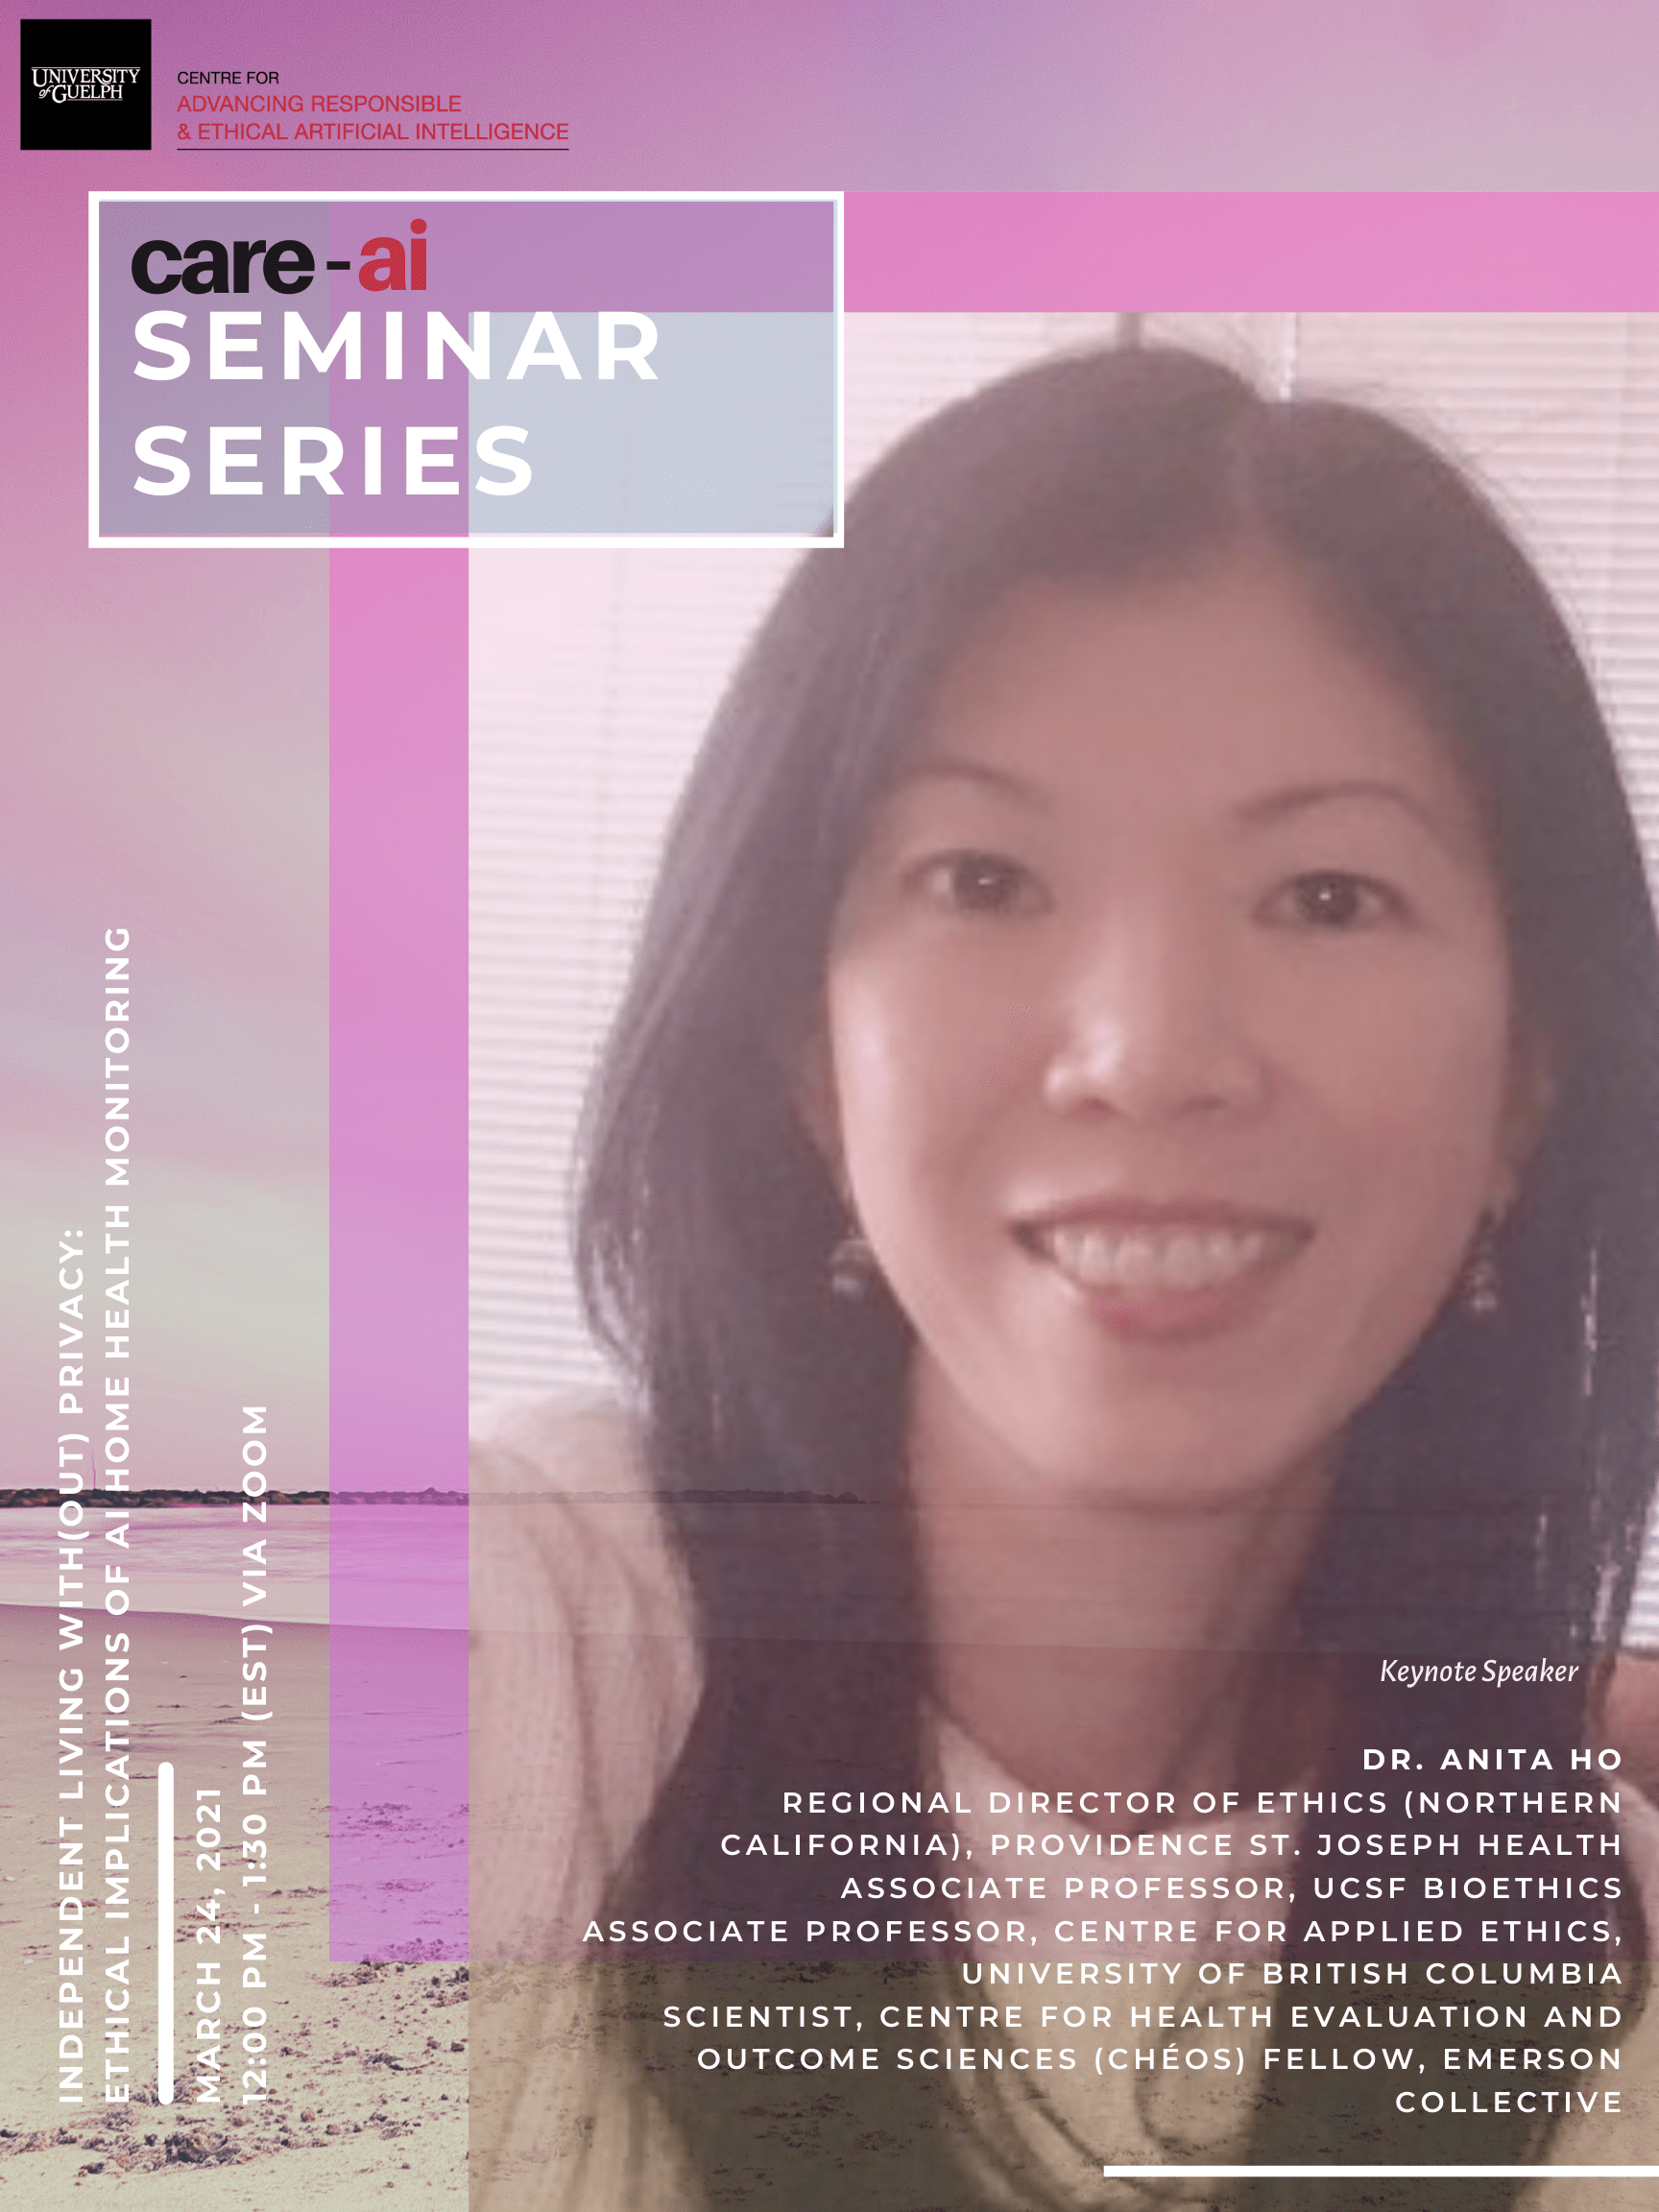 """Poster for care-ai Seminar Series: with Deborah Raji. Yellow background with close up of Deborah face. Care-ai Building block and words """"Care-ai Seminar Series in top left corner. Bottom left corner has the date """"November 25, 2020 12 pm to 1:30 pm Virtual Zoom Meeting. Bottom Right corner, under Deborah Raji face are the words """"Keynote Speaker Inioluwa Deoborah Raji Fellow at Mozilla Foundation"""""""